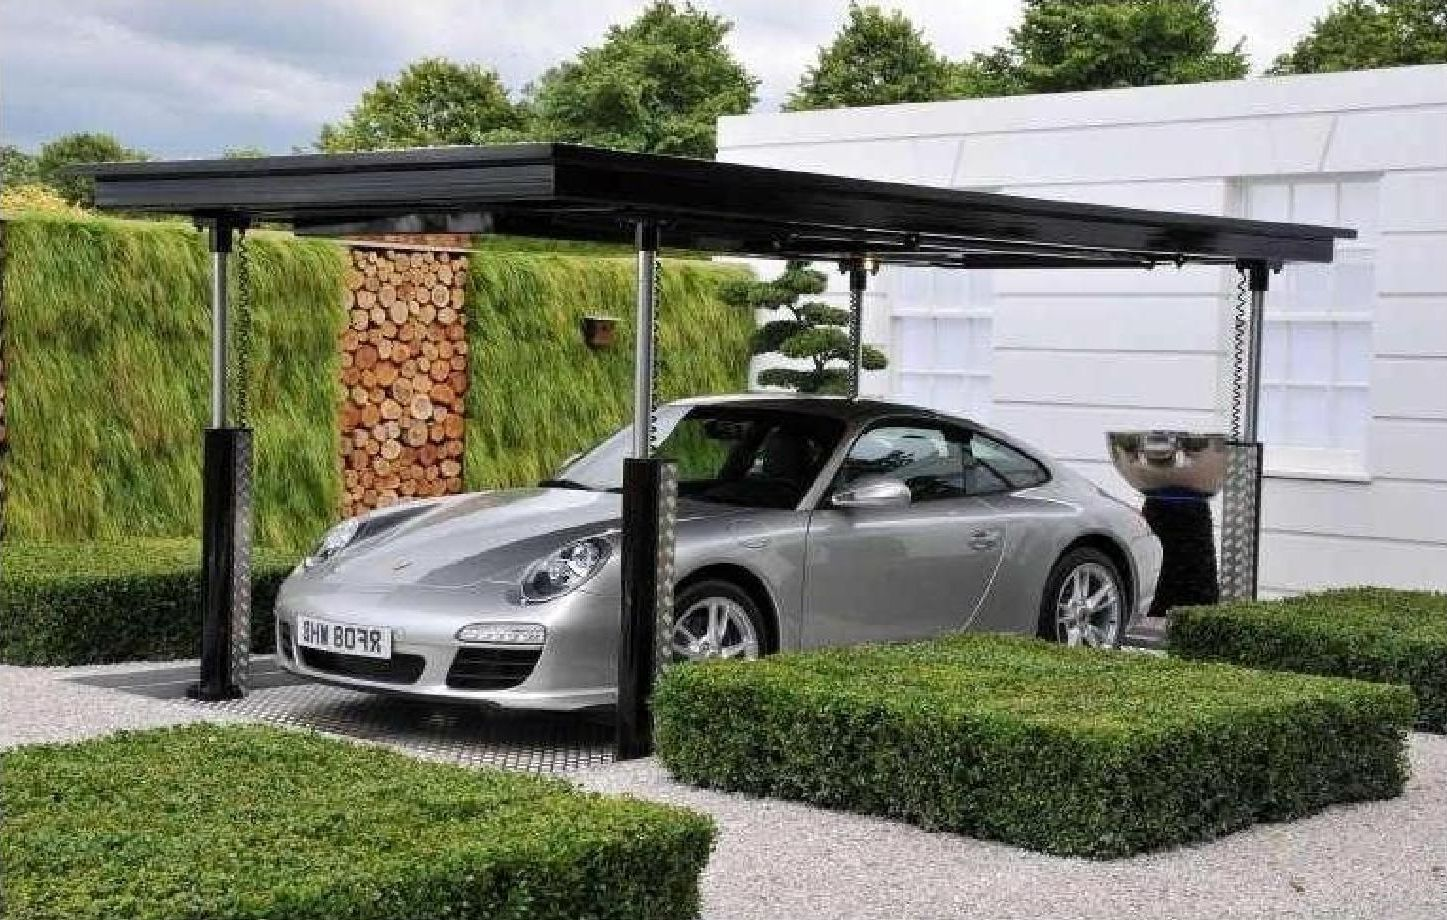 minimalist-open-garage-style-with-black-canopy-roof- & minimalist-open-garage-style-with-black-canopy-roof-are-design-in ...